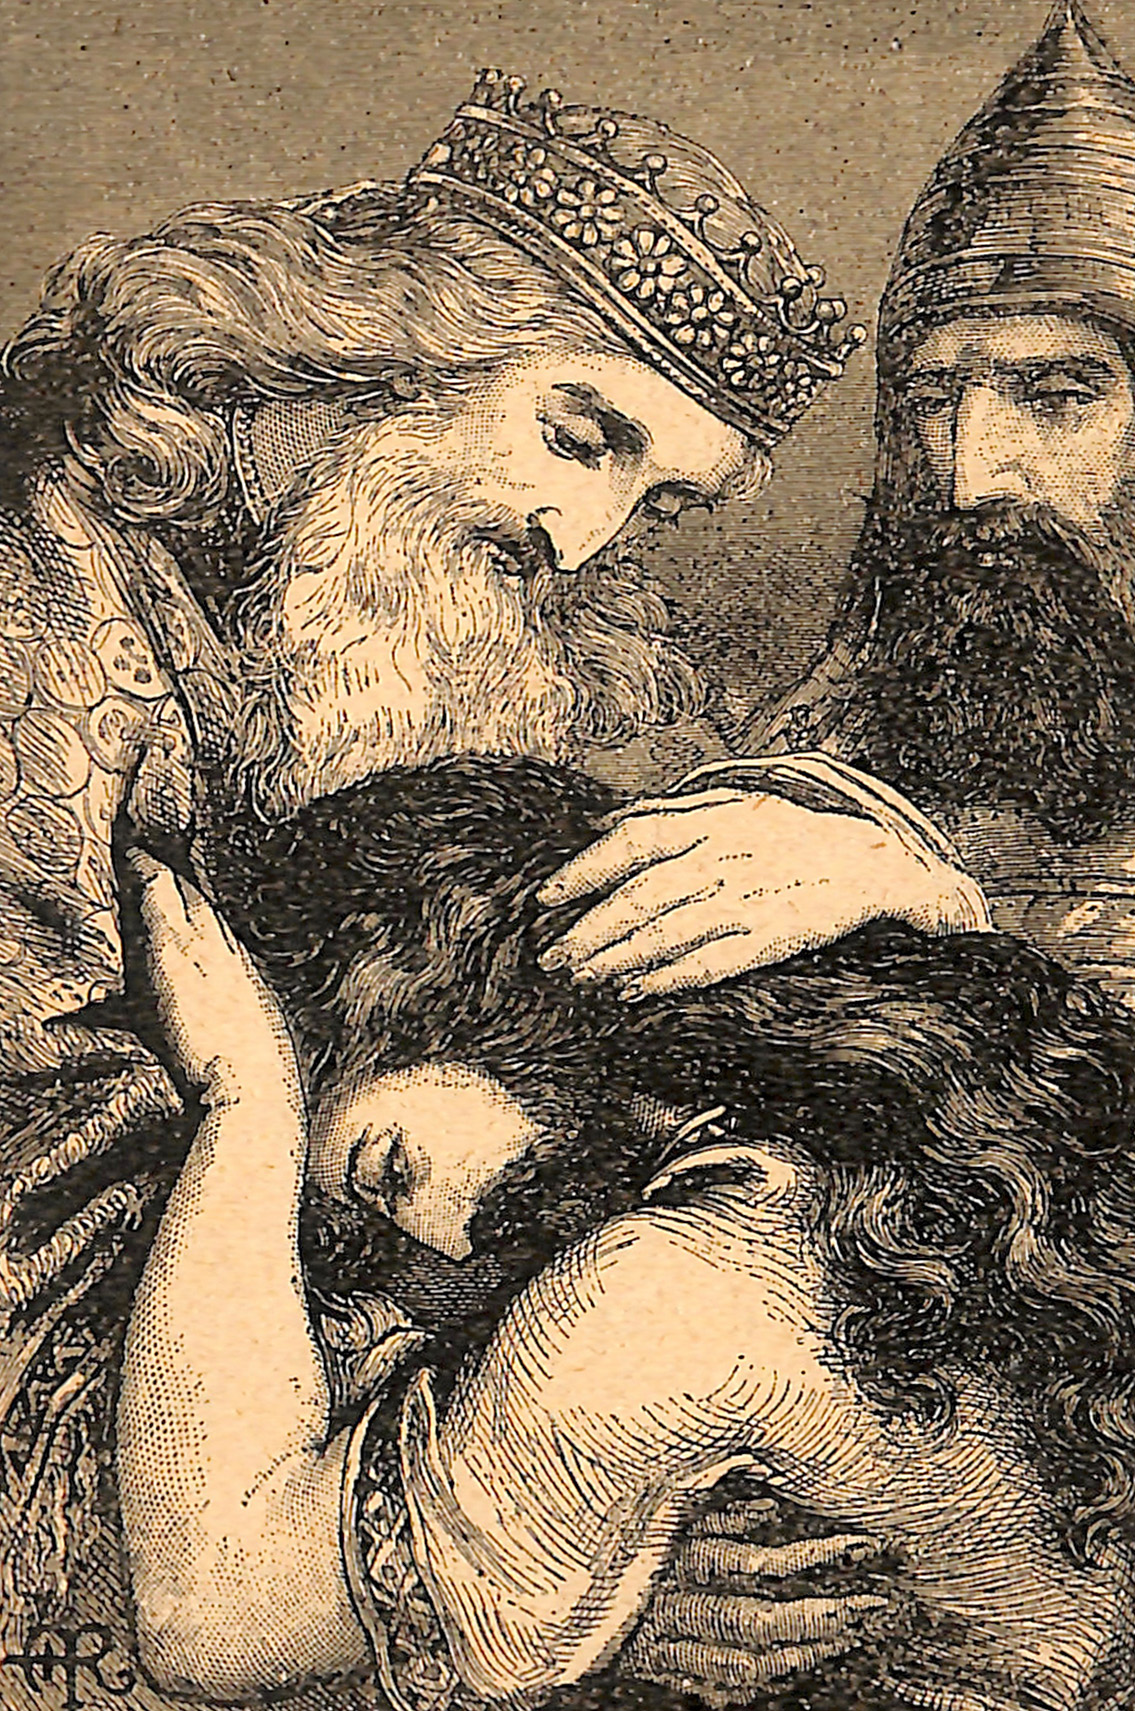 King David Forgiving His Son Absalom